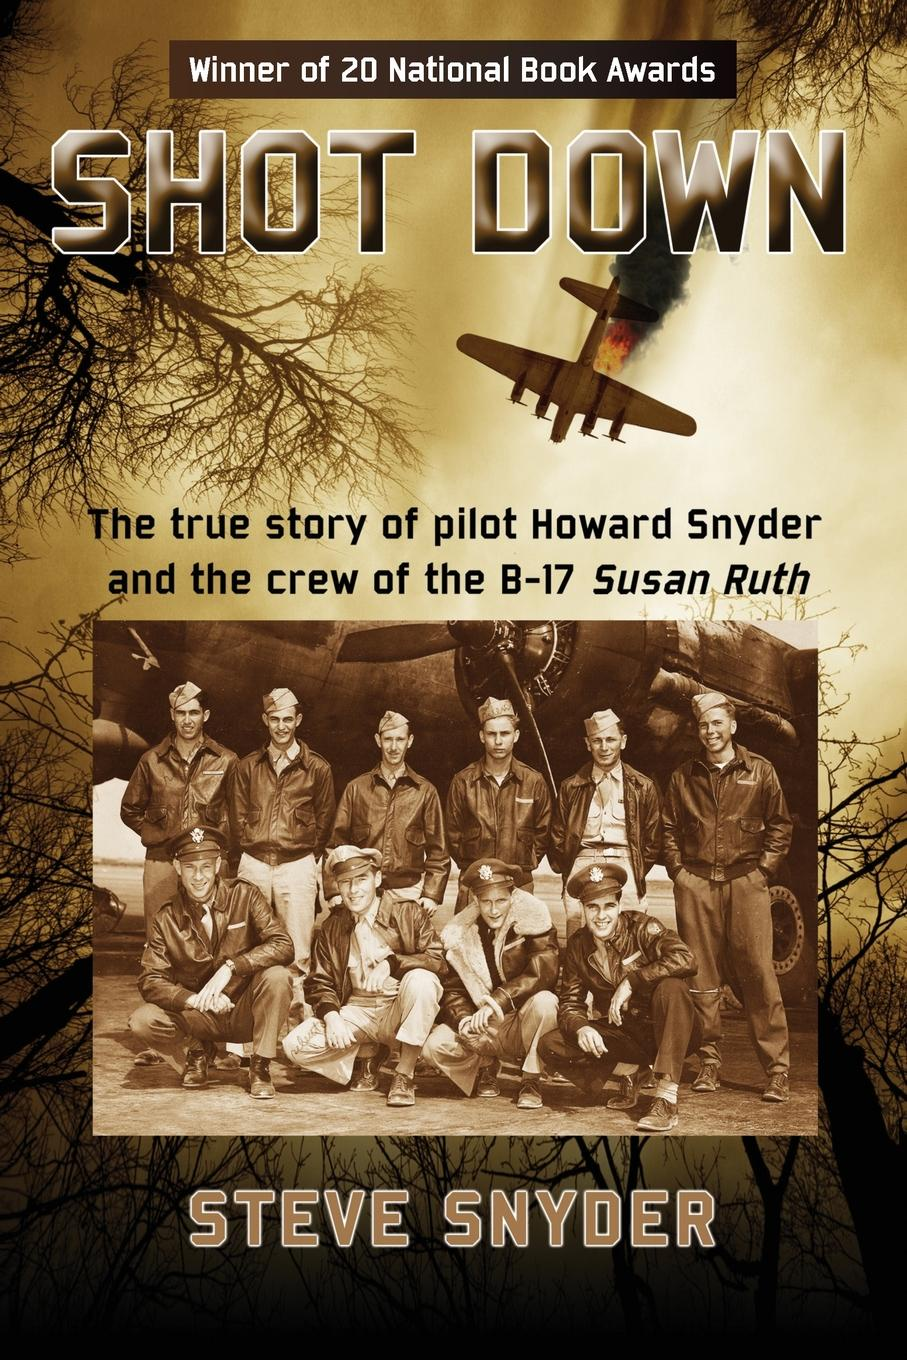 SHOT DOWN. The true story of pilot Howard Snyder and the crew of the B-17 Susan Ruth